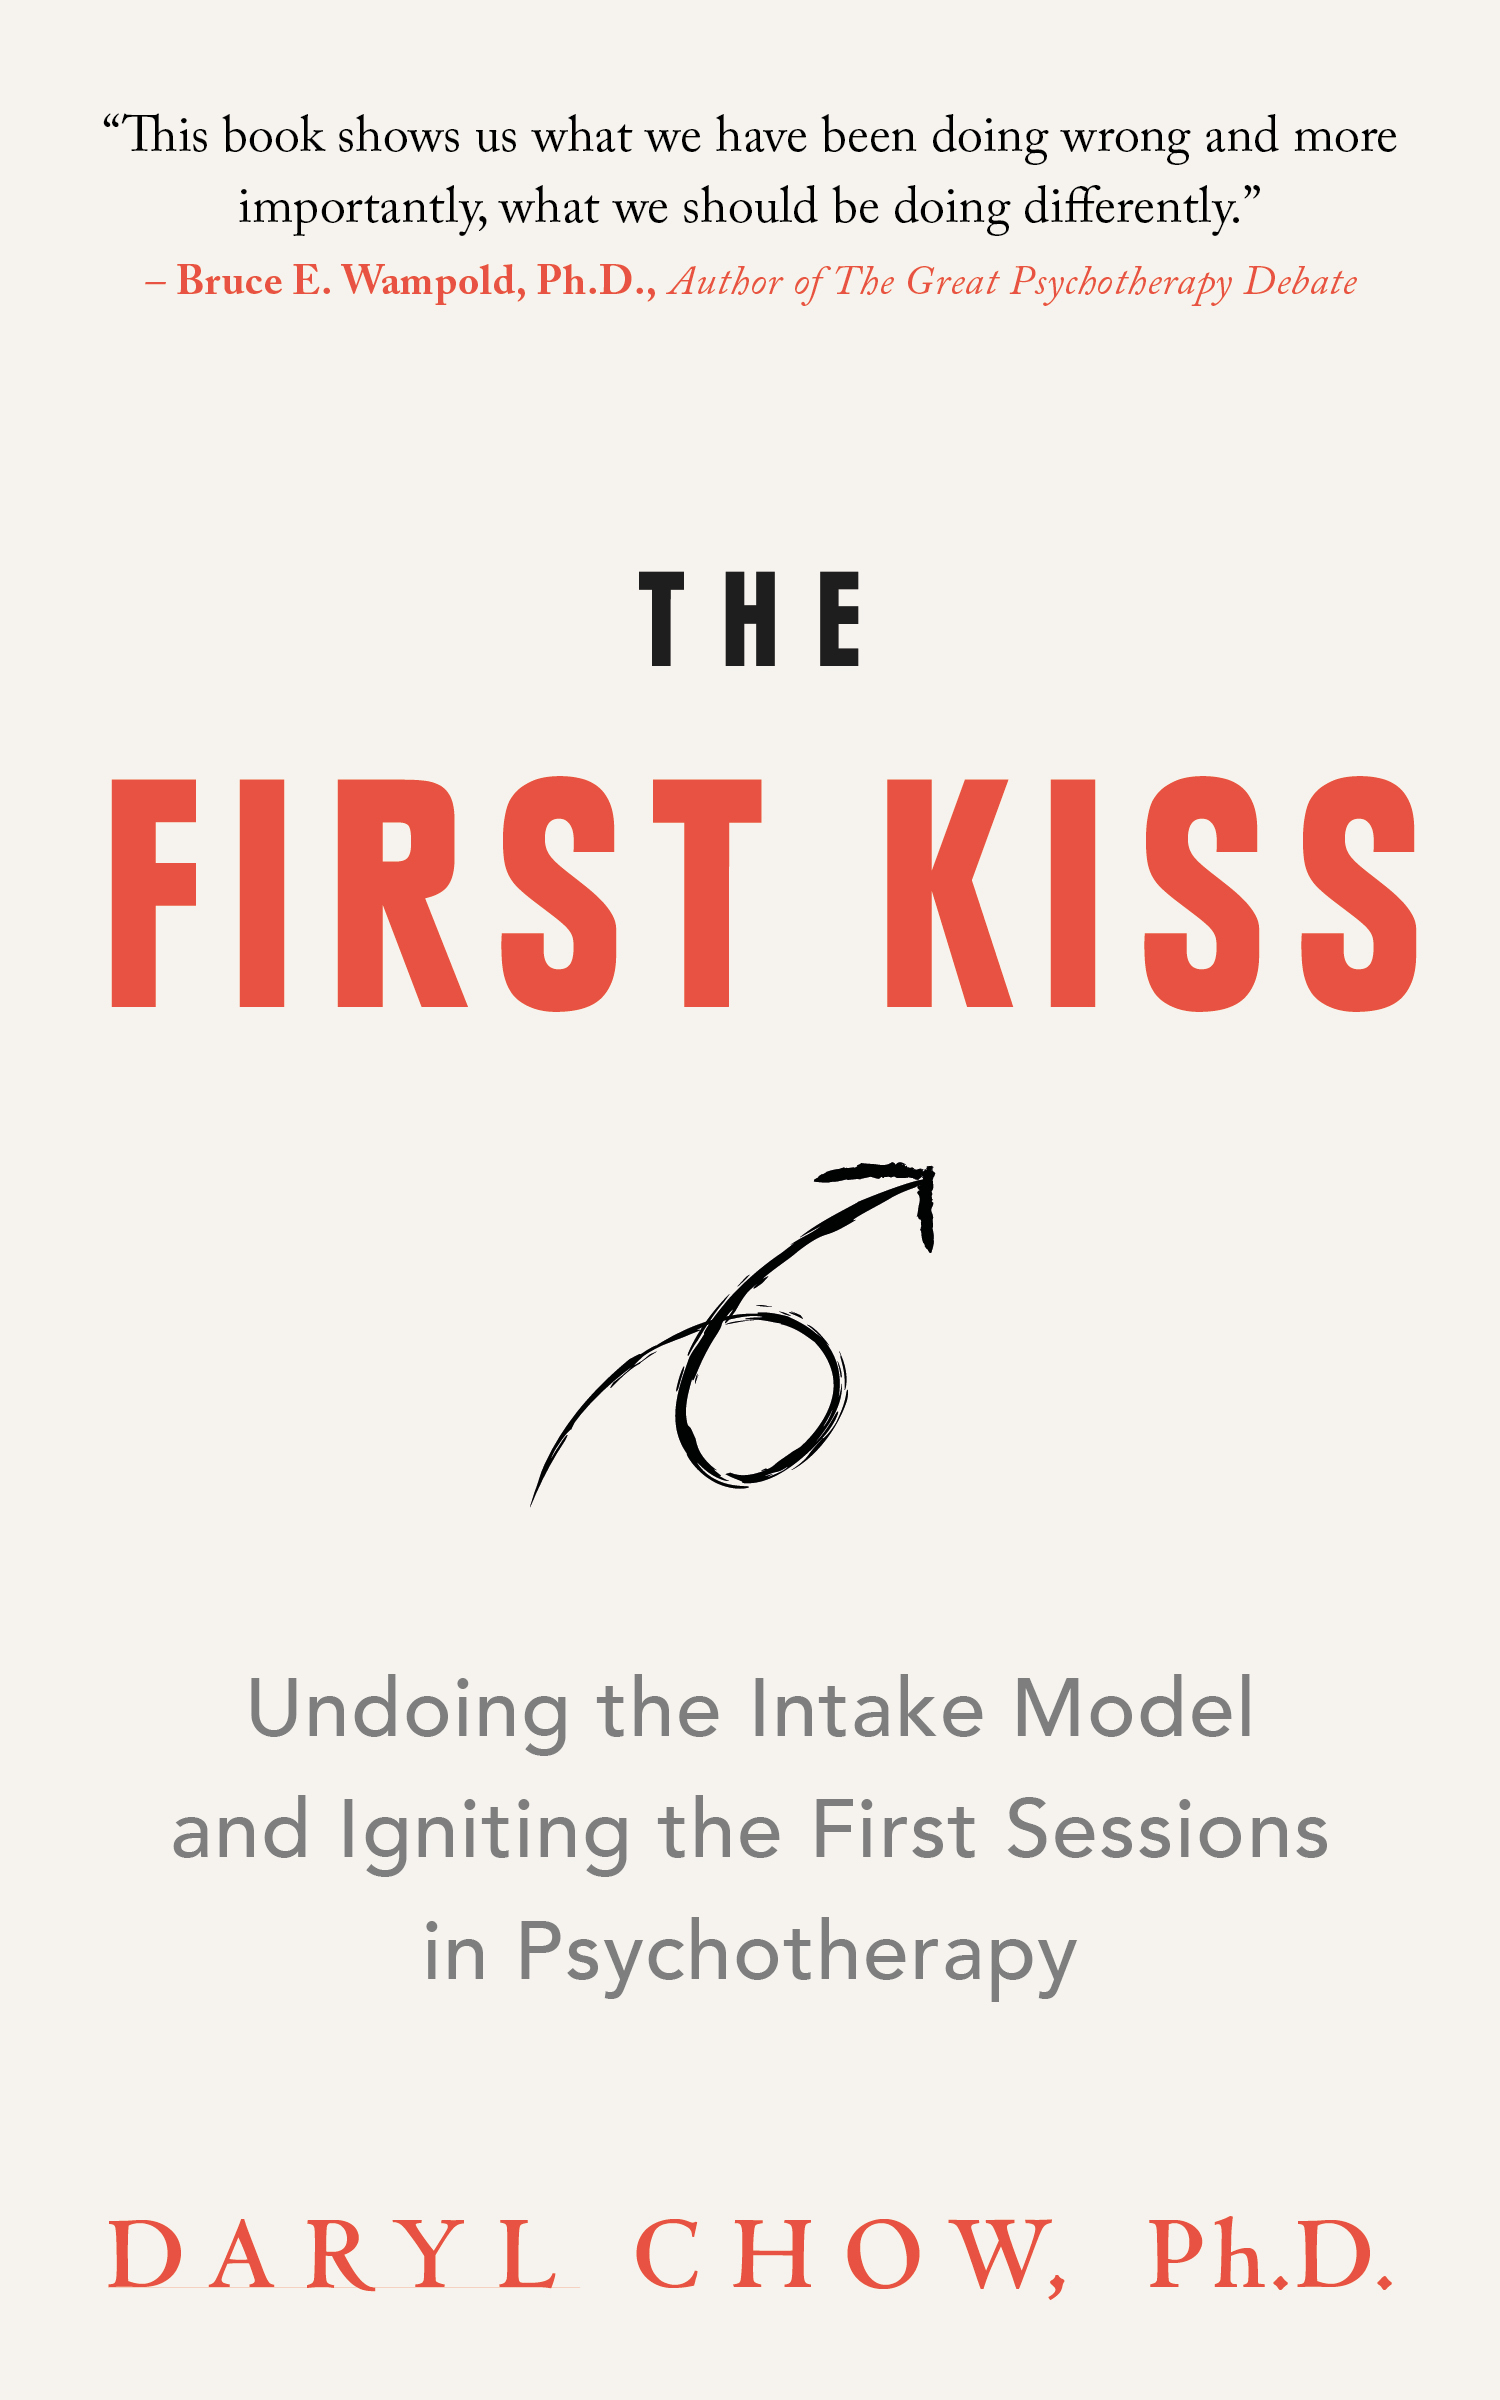 the first kiss book cover